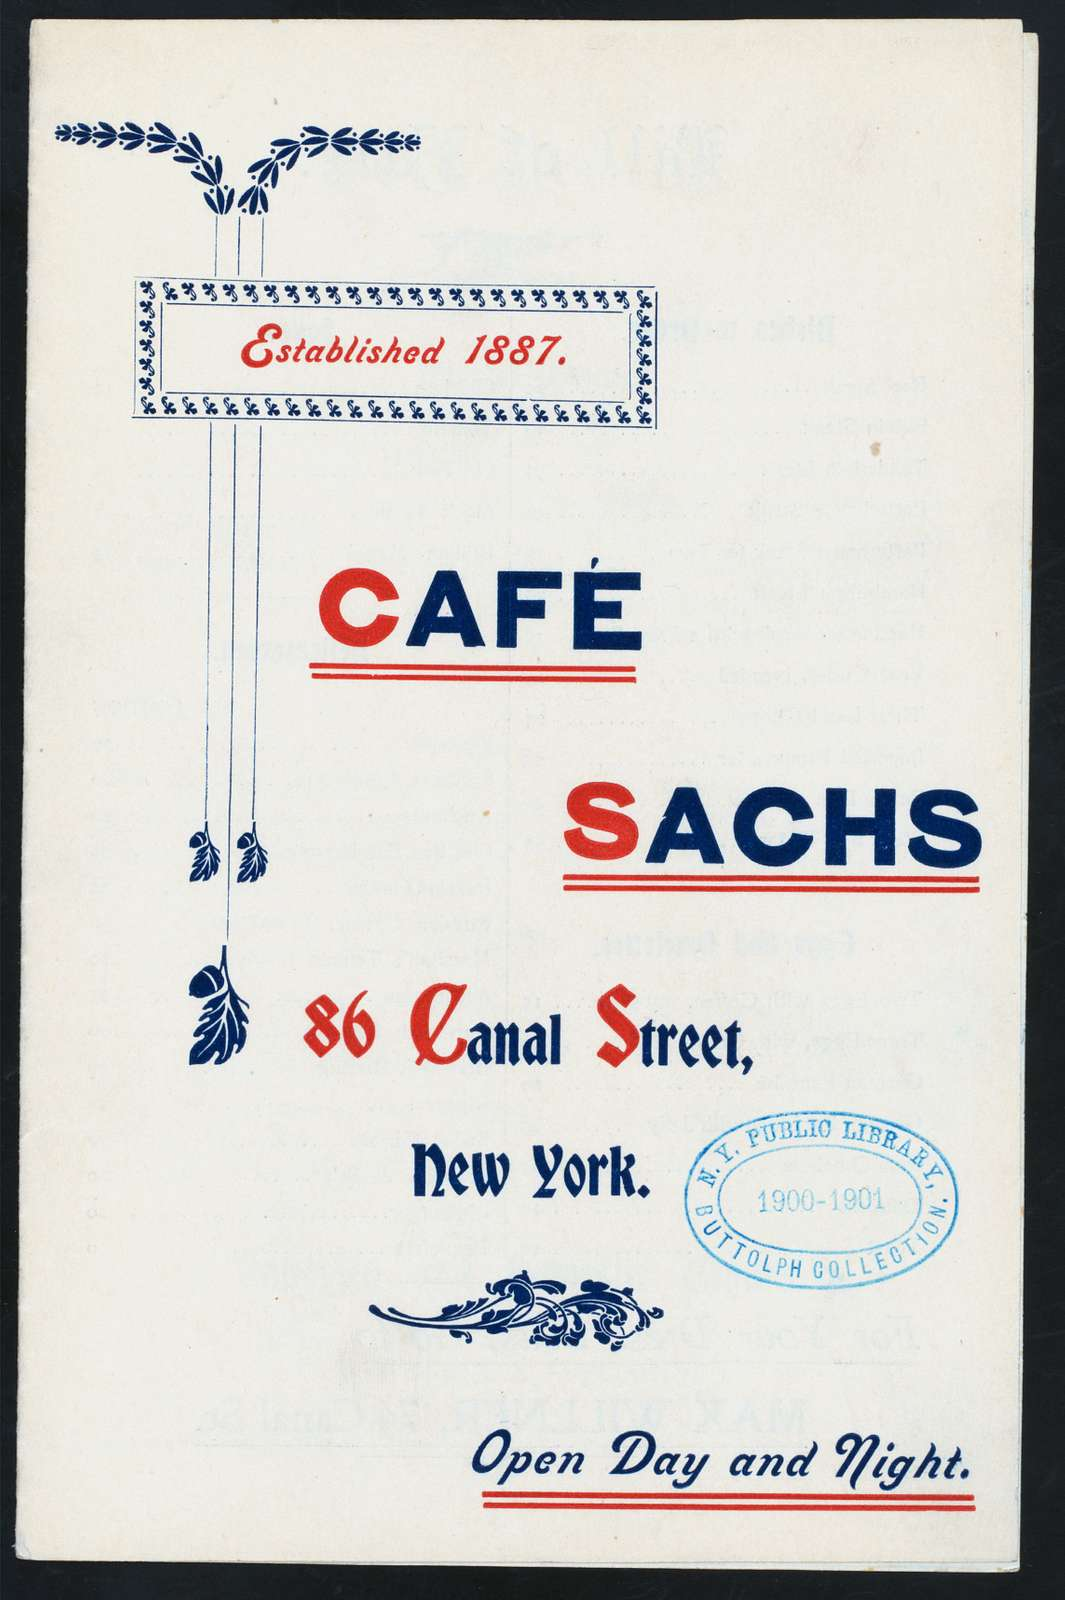 "DAILY MENU [held by] CAFE SACHS [at] ""86 CANAL STREET, NY"" (REST;)"